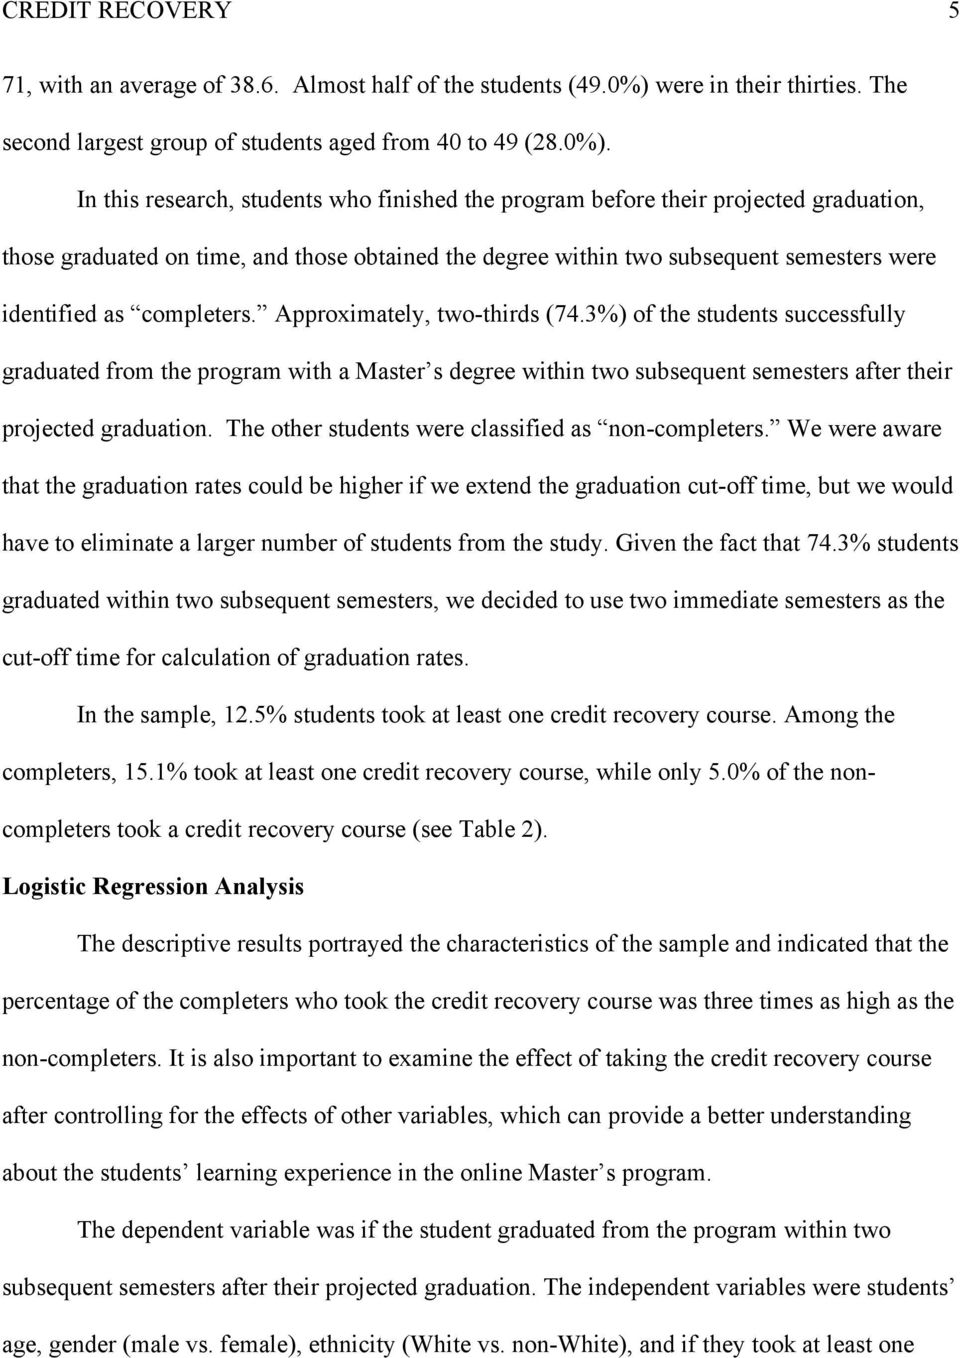 In this research, students who finished the program before their projected graduation, those graduated on time, and those obtained the degree within two subsequent semesters were identified as